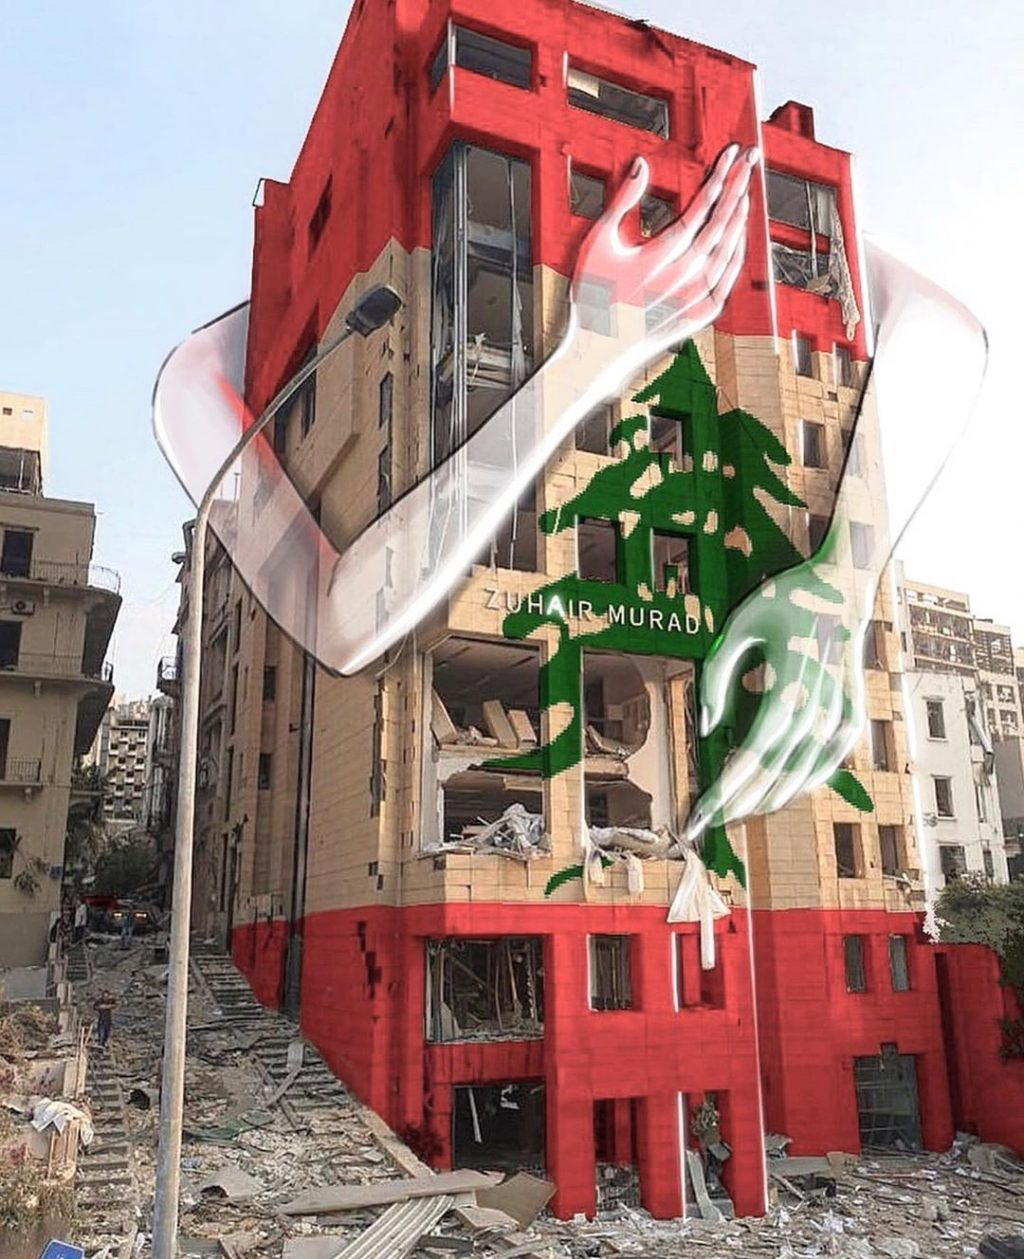 Beirut Creatives Speak Out About Loss, Damage, and Their Resilience